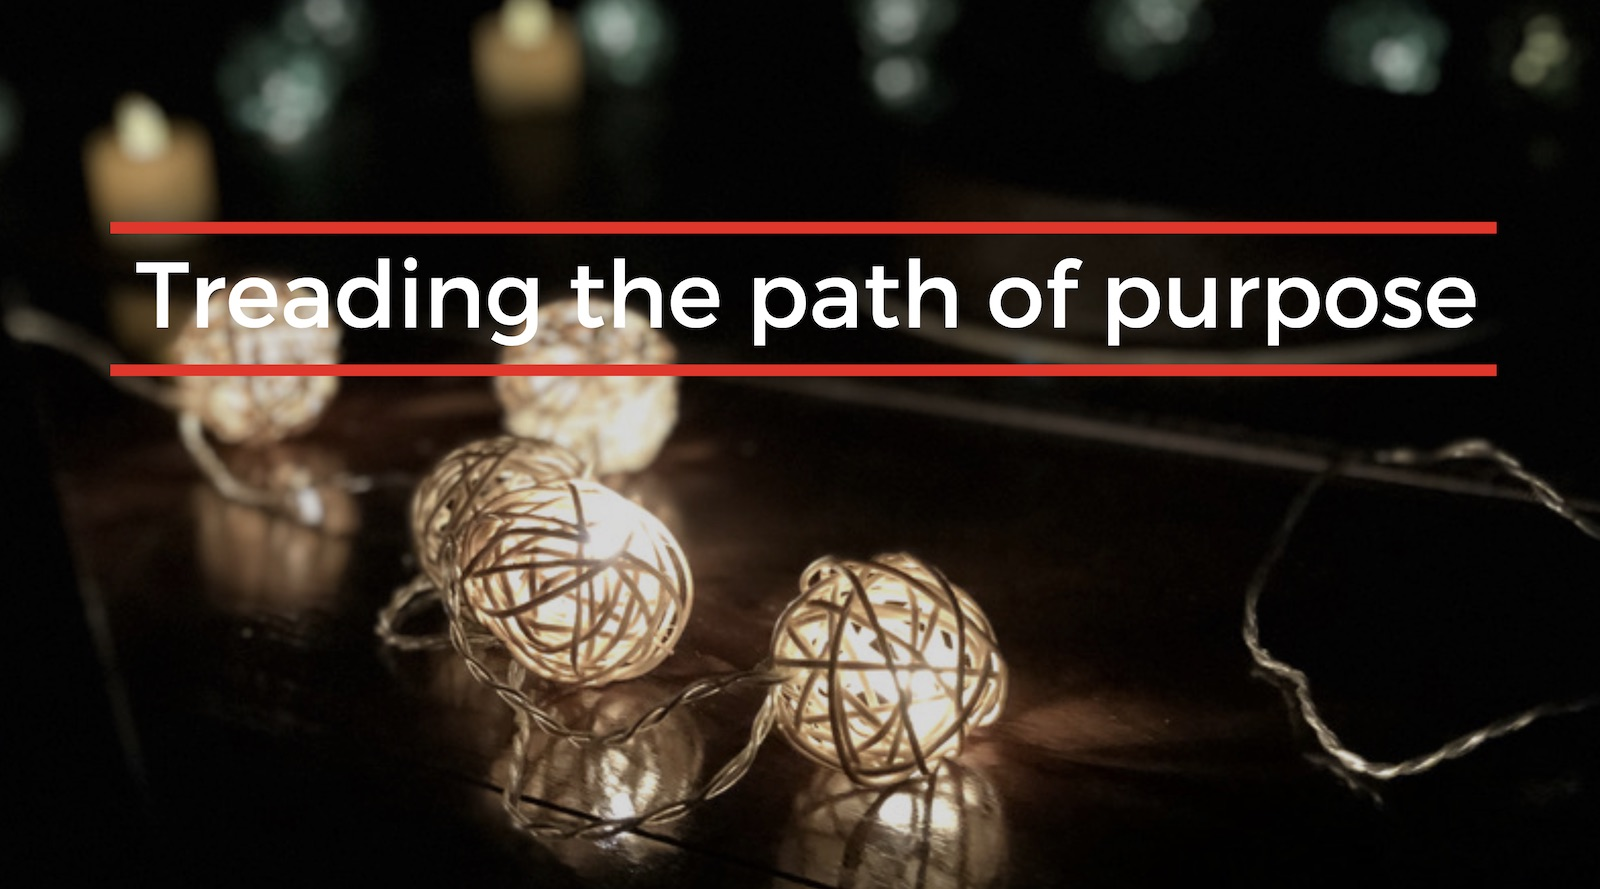 Treading the path of purpose – it's risky but rewarding too